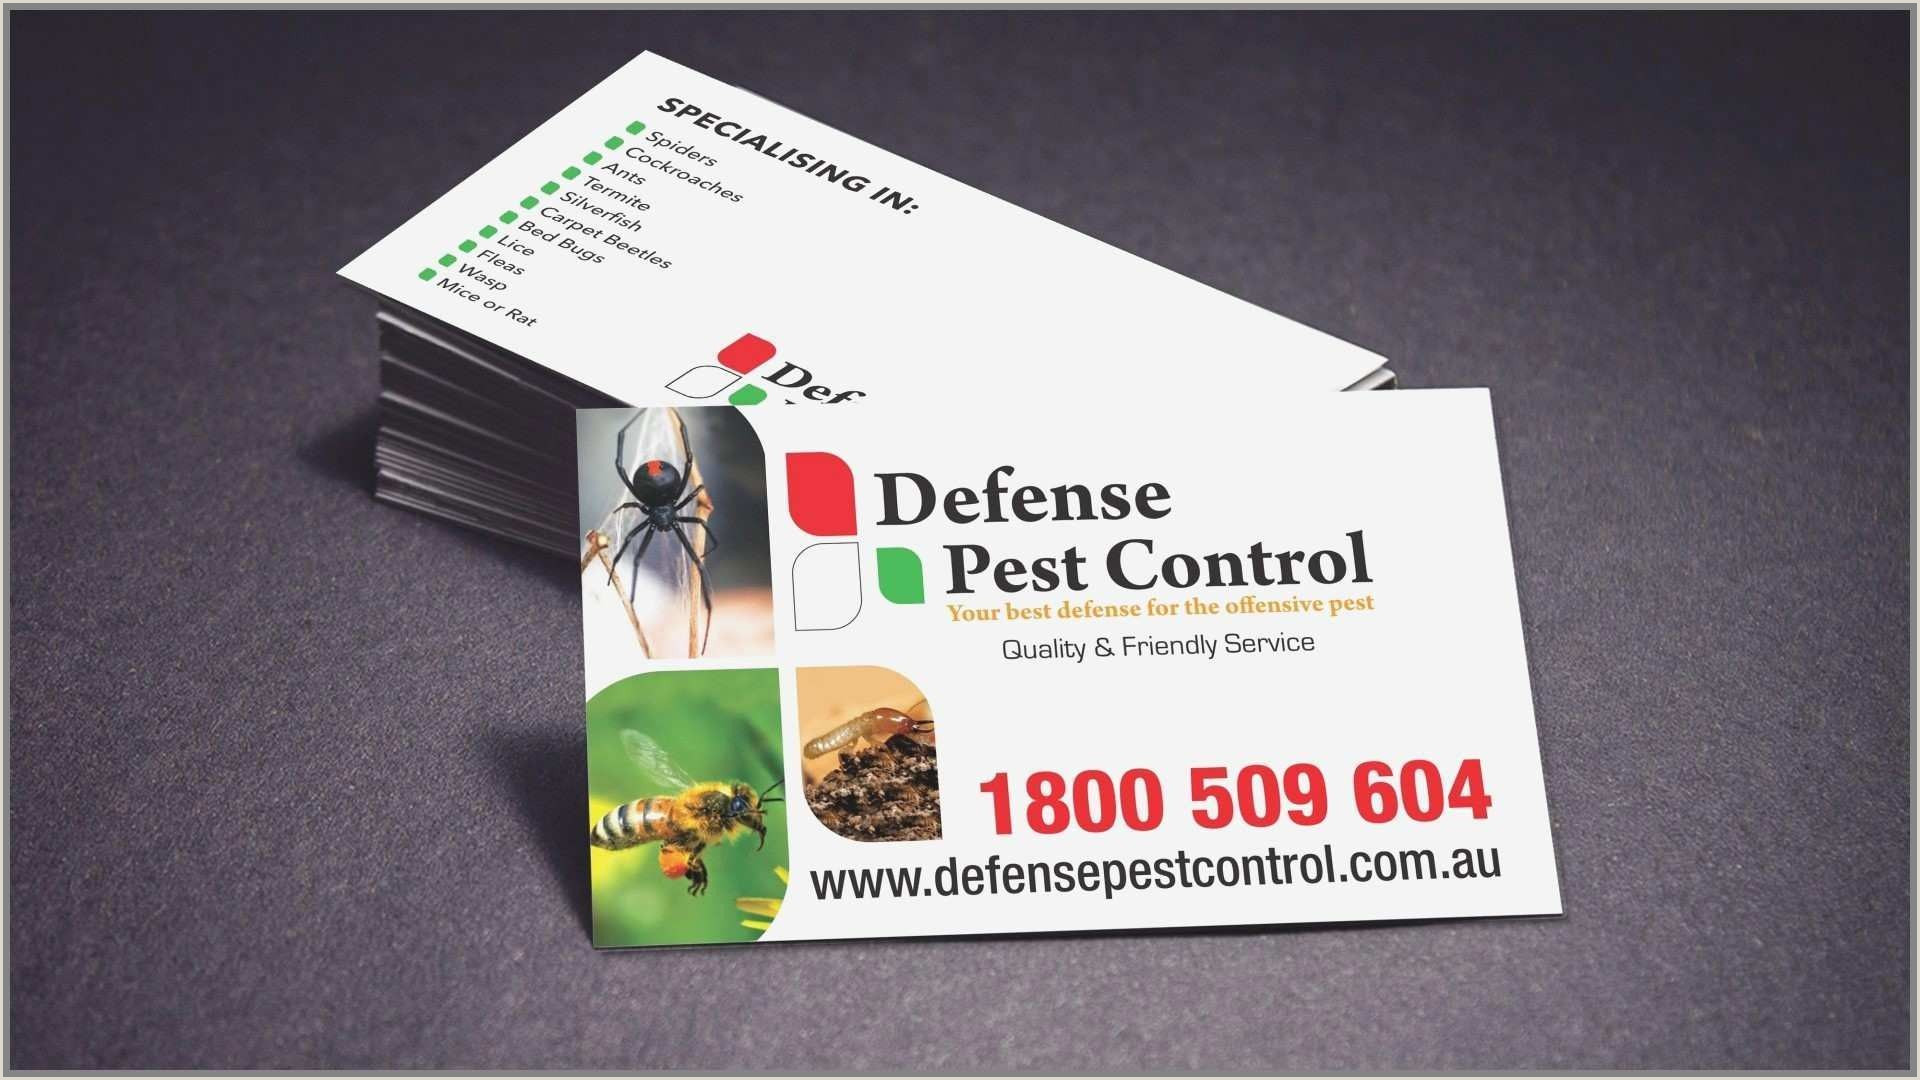 Business Cards For Cleaning Business Download New House Cleaning Business Cards Templates Free